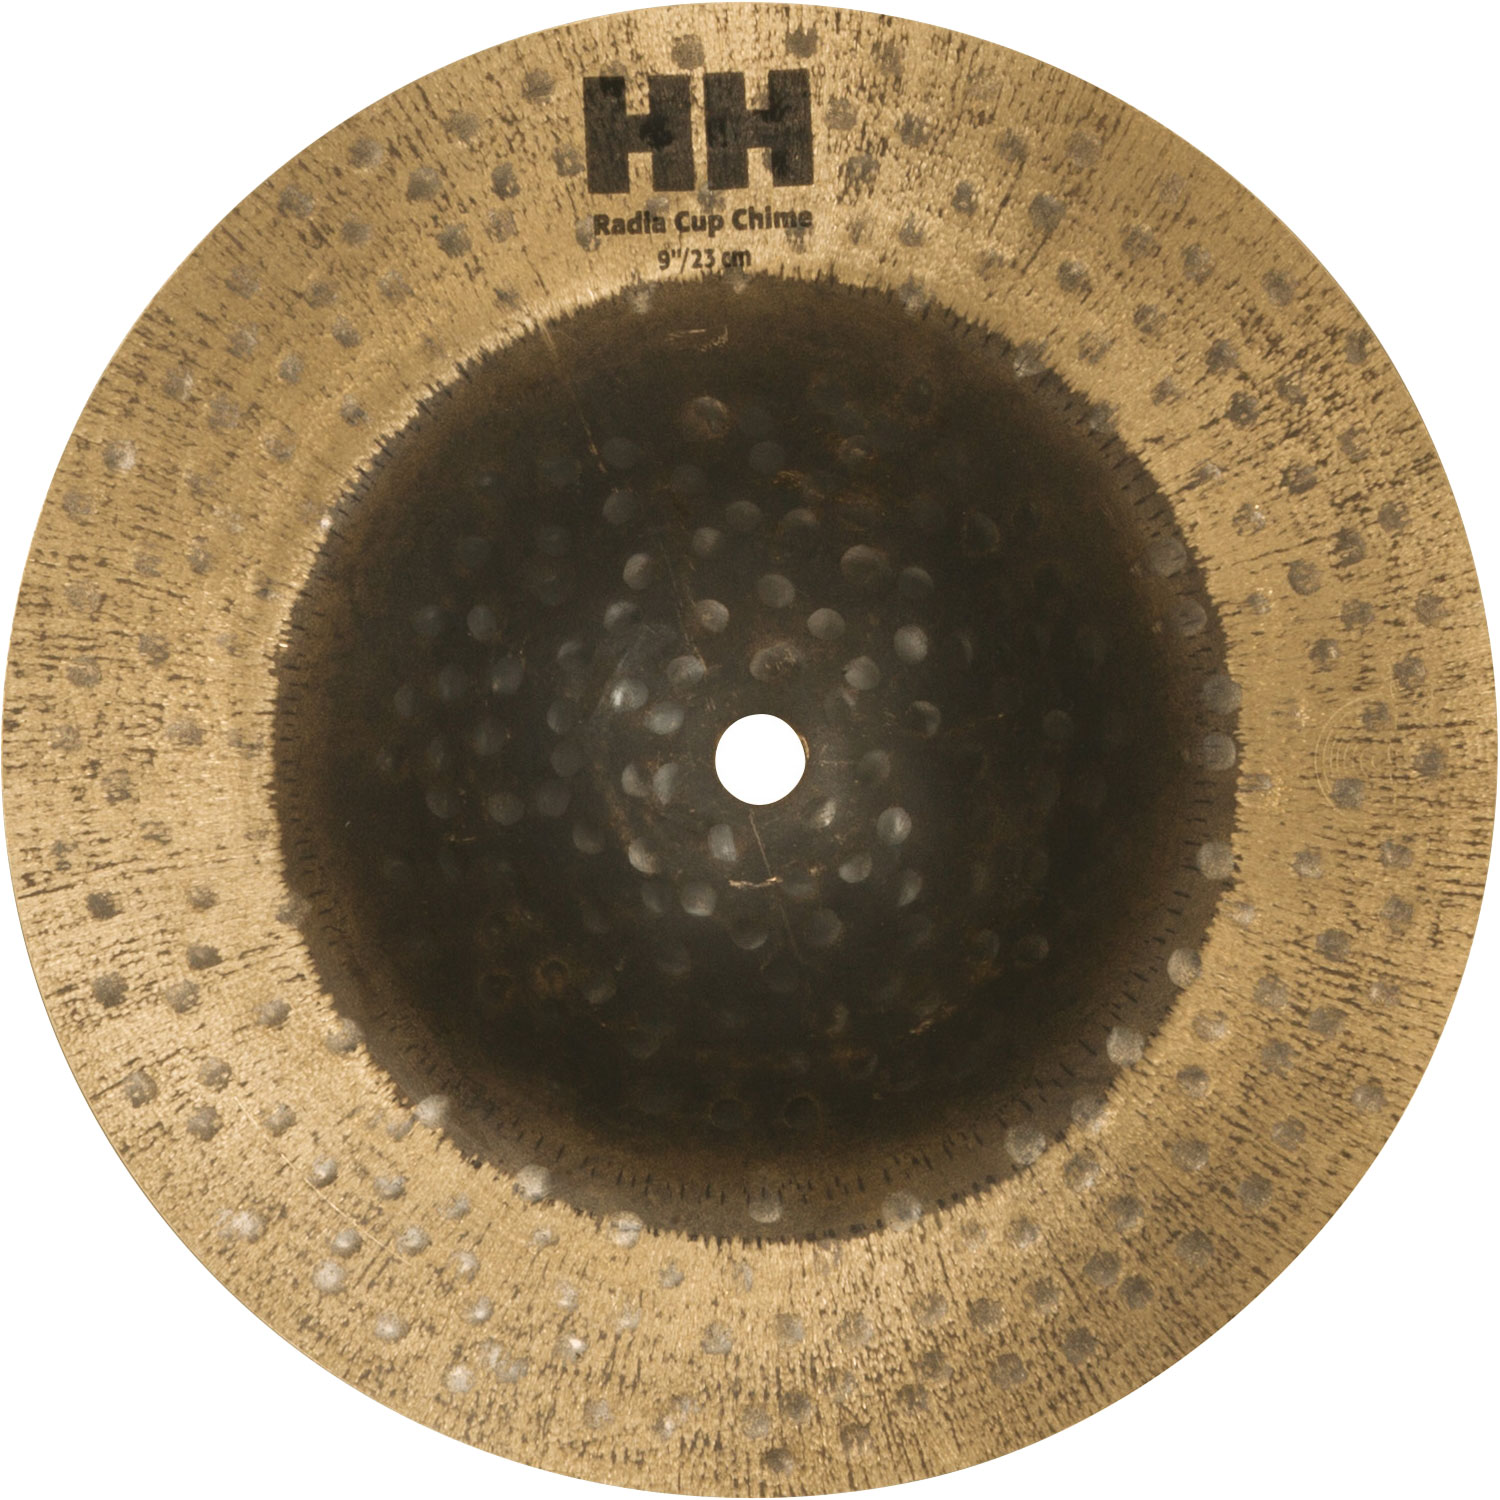 """Sabian 9"""" Radia Cup Chime with Natural Finish"""